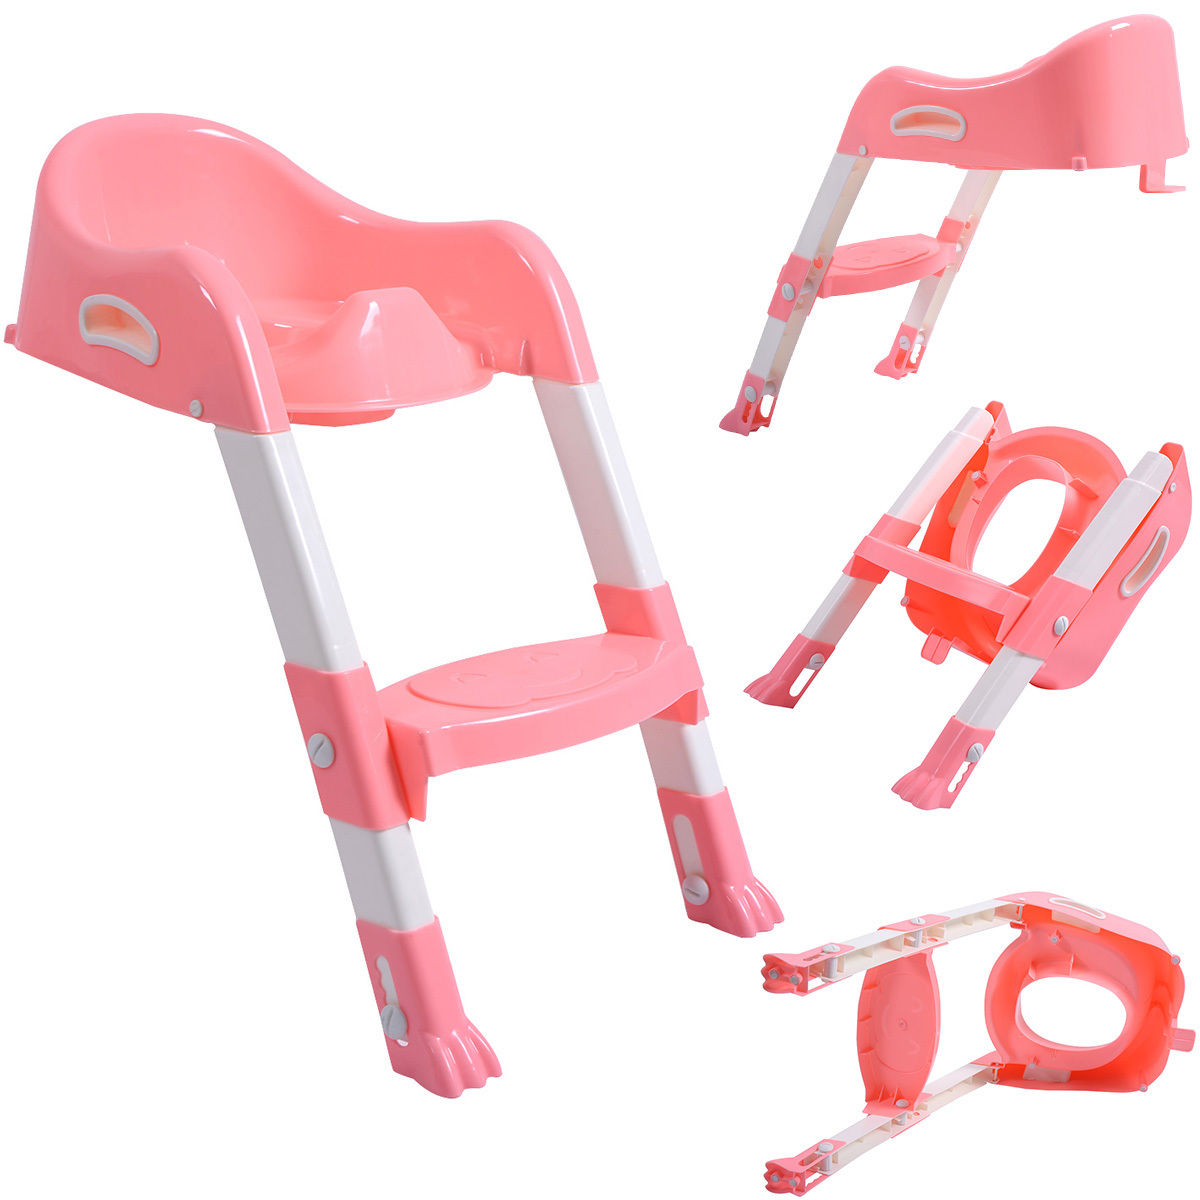 Goplus Kid Training Toilet Potty Trainer Seat Chair Toddler W/Ladder Step Up Stool Pink